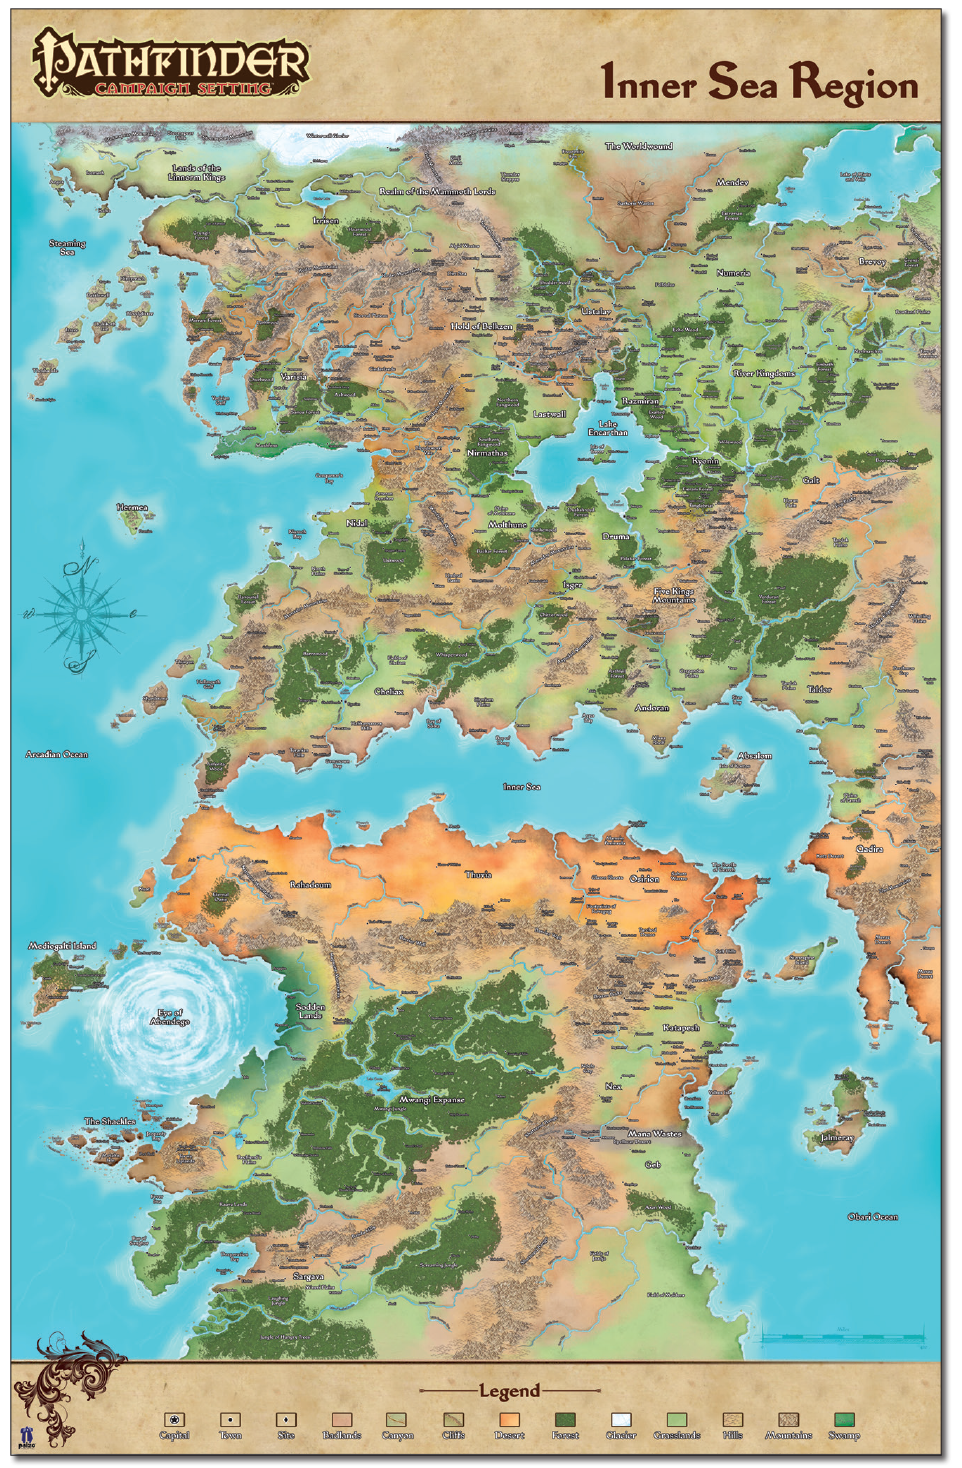 Pathfinder Tales Map of Inner Sea Region